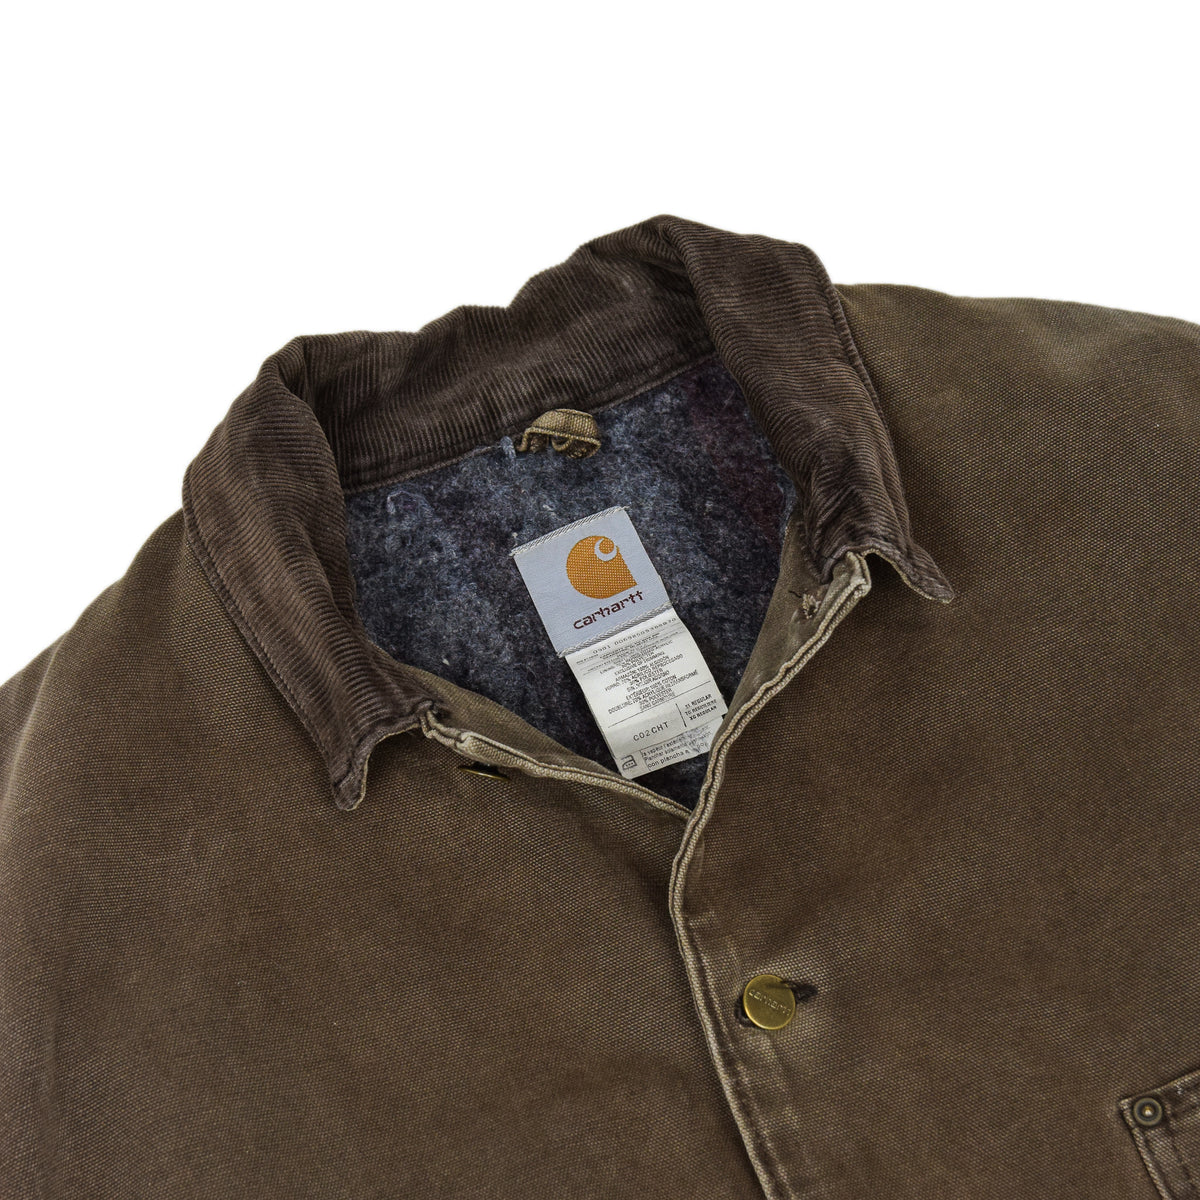 Vintage Carhartt Michigan Blanket Lined Brown Worker Chore Jacket Made in USA XL collar detail